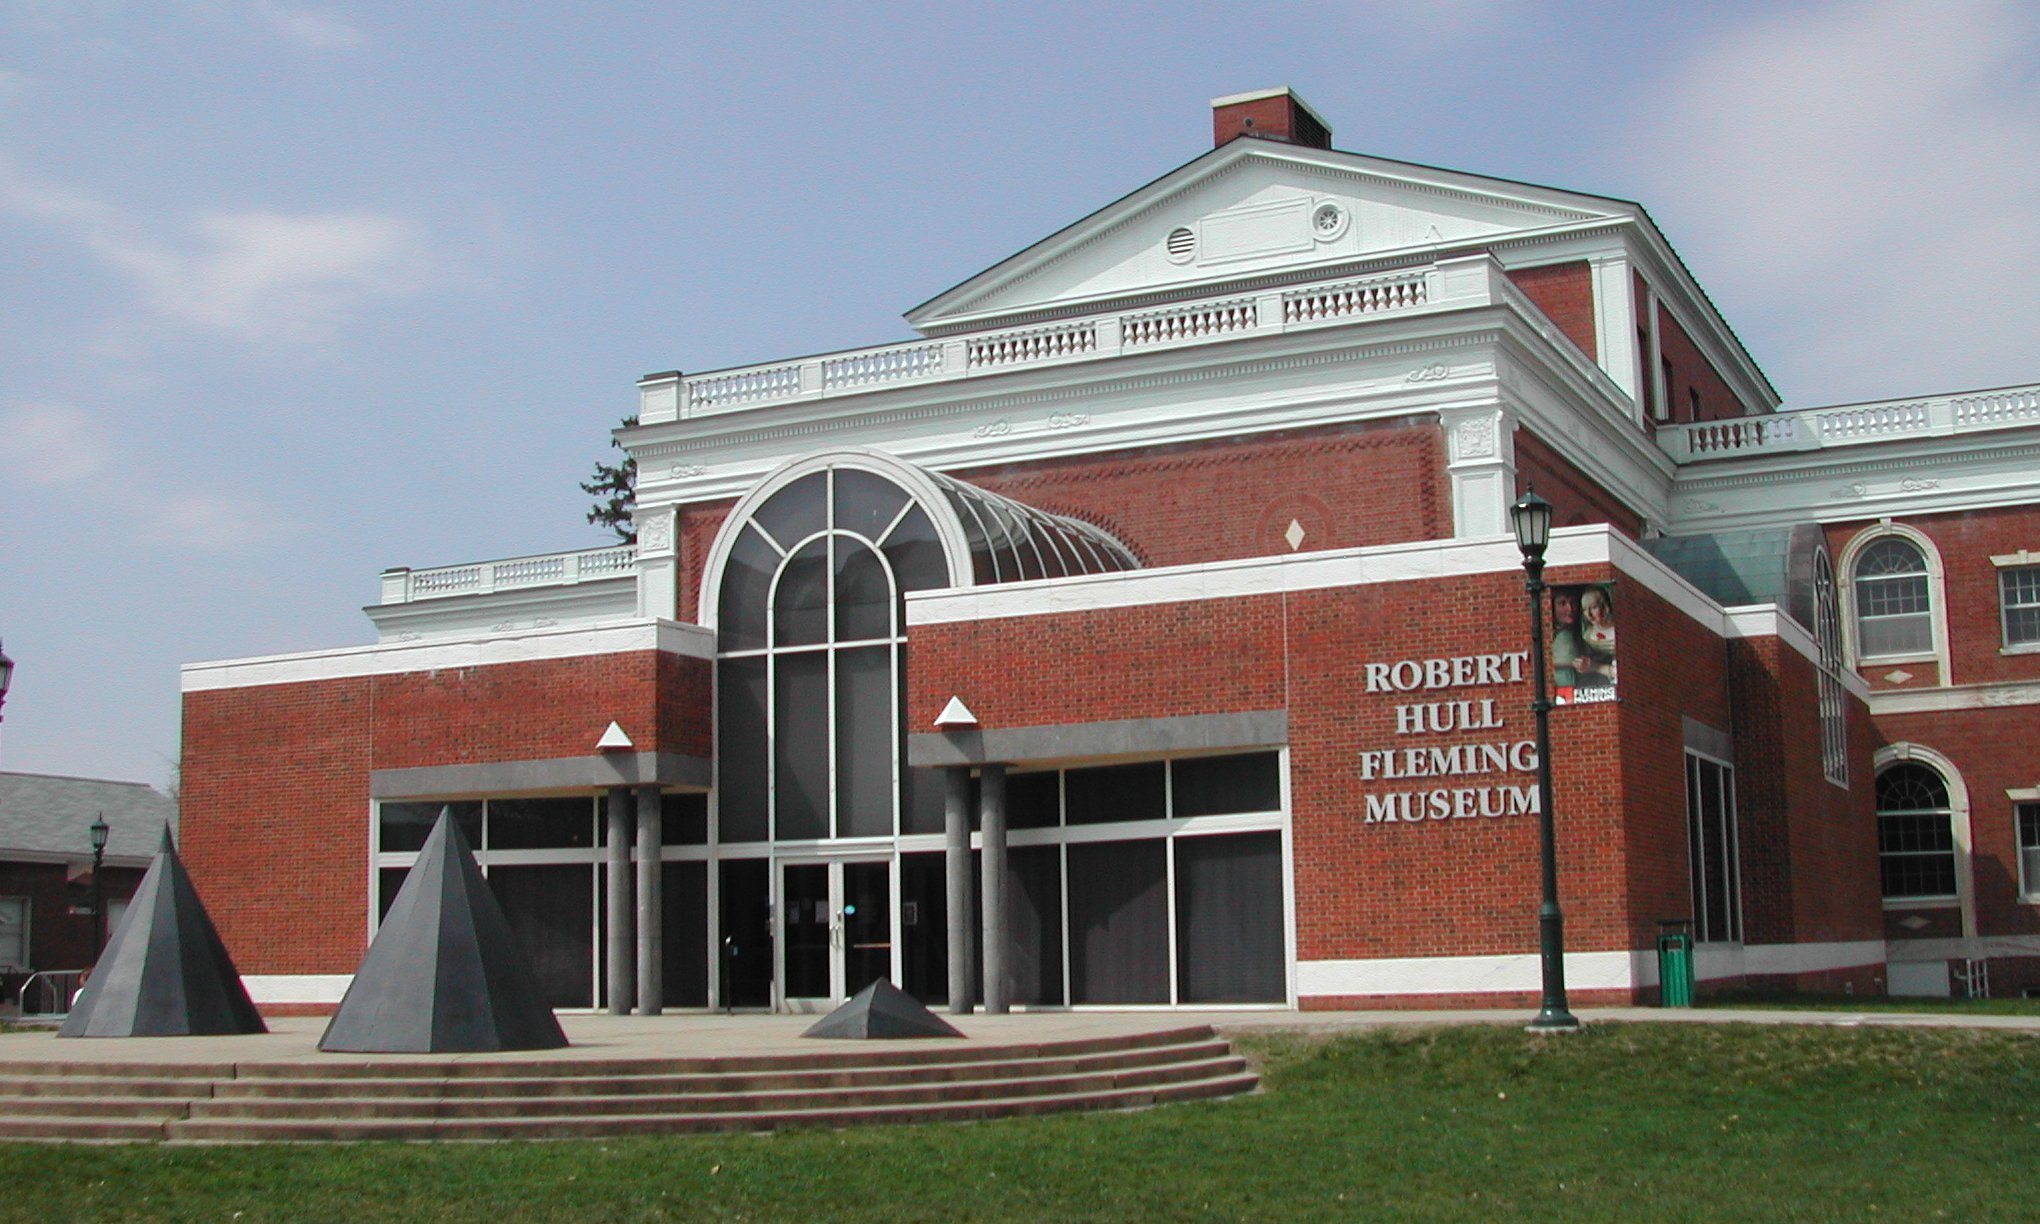 Robert Hull Fleming Museum